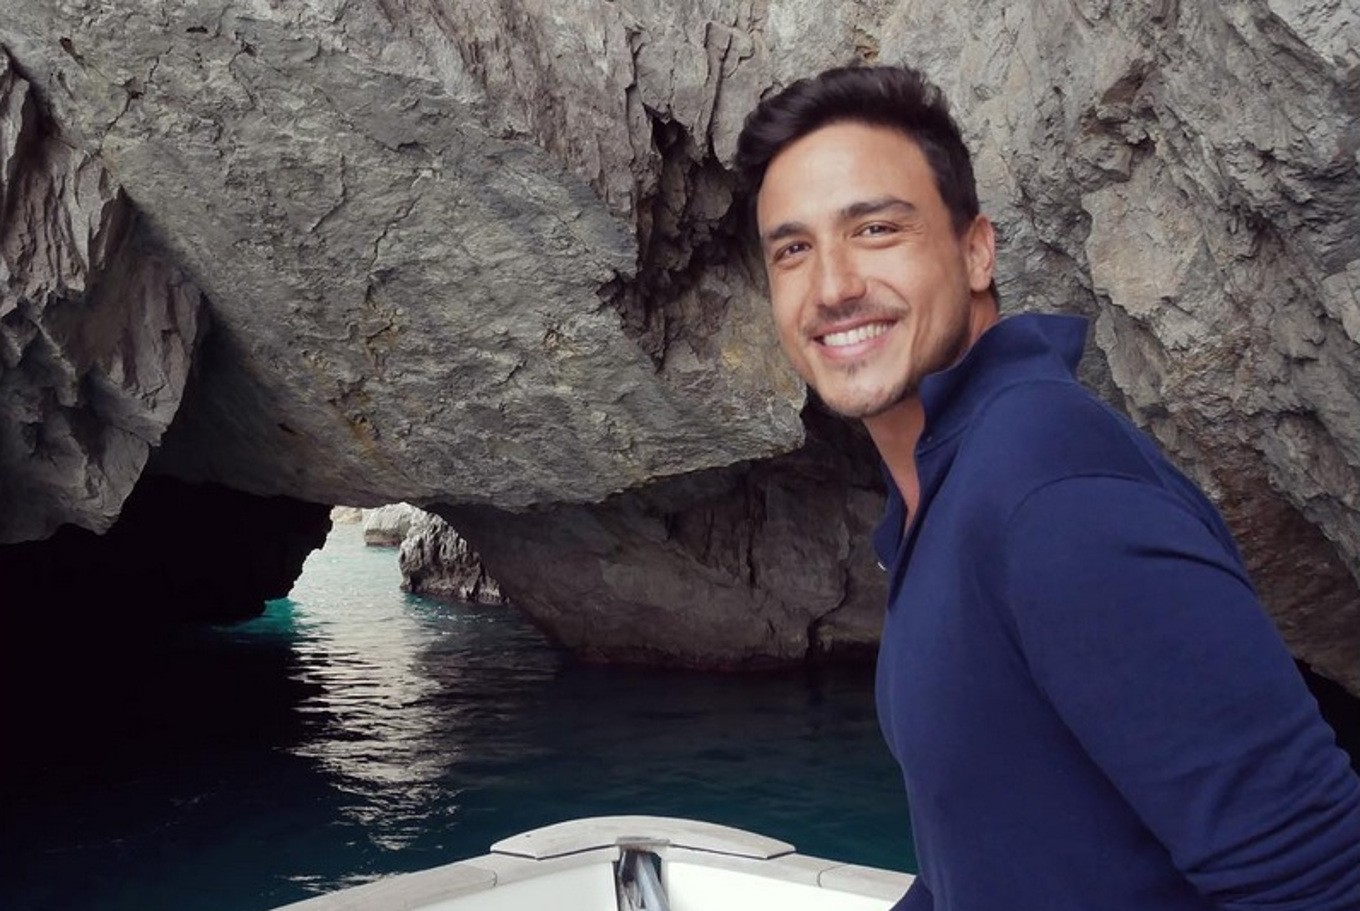 Hamish Daud: Big dreams can be inspired from simple things